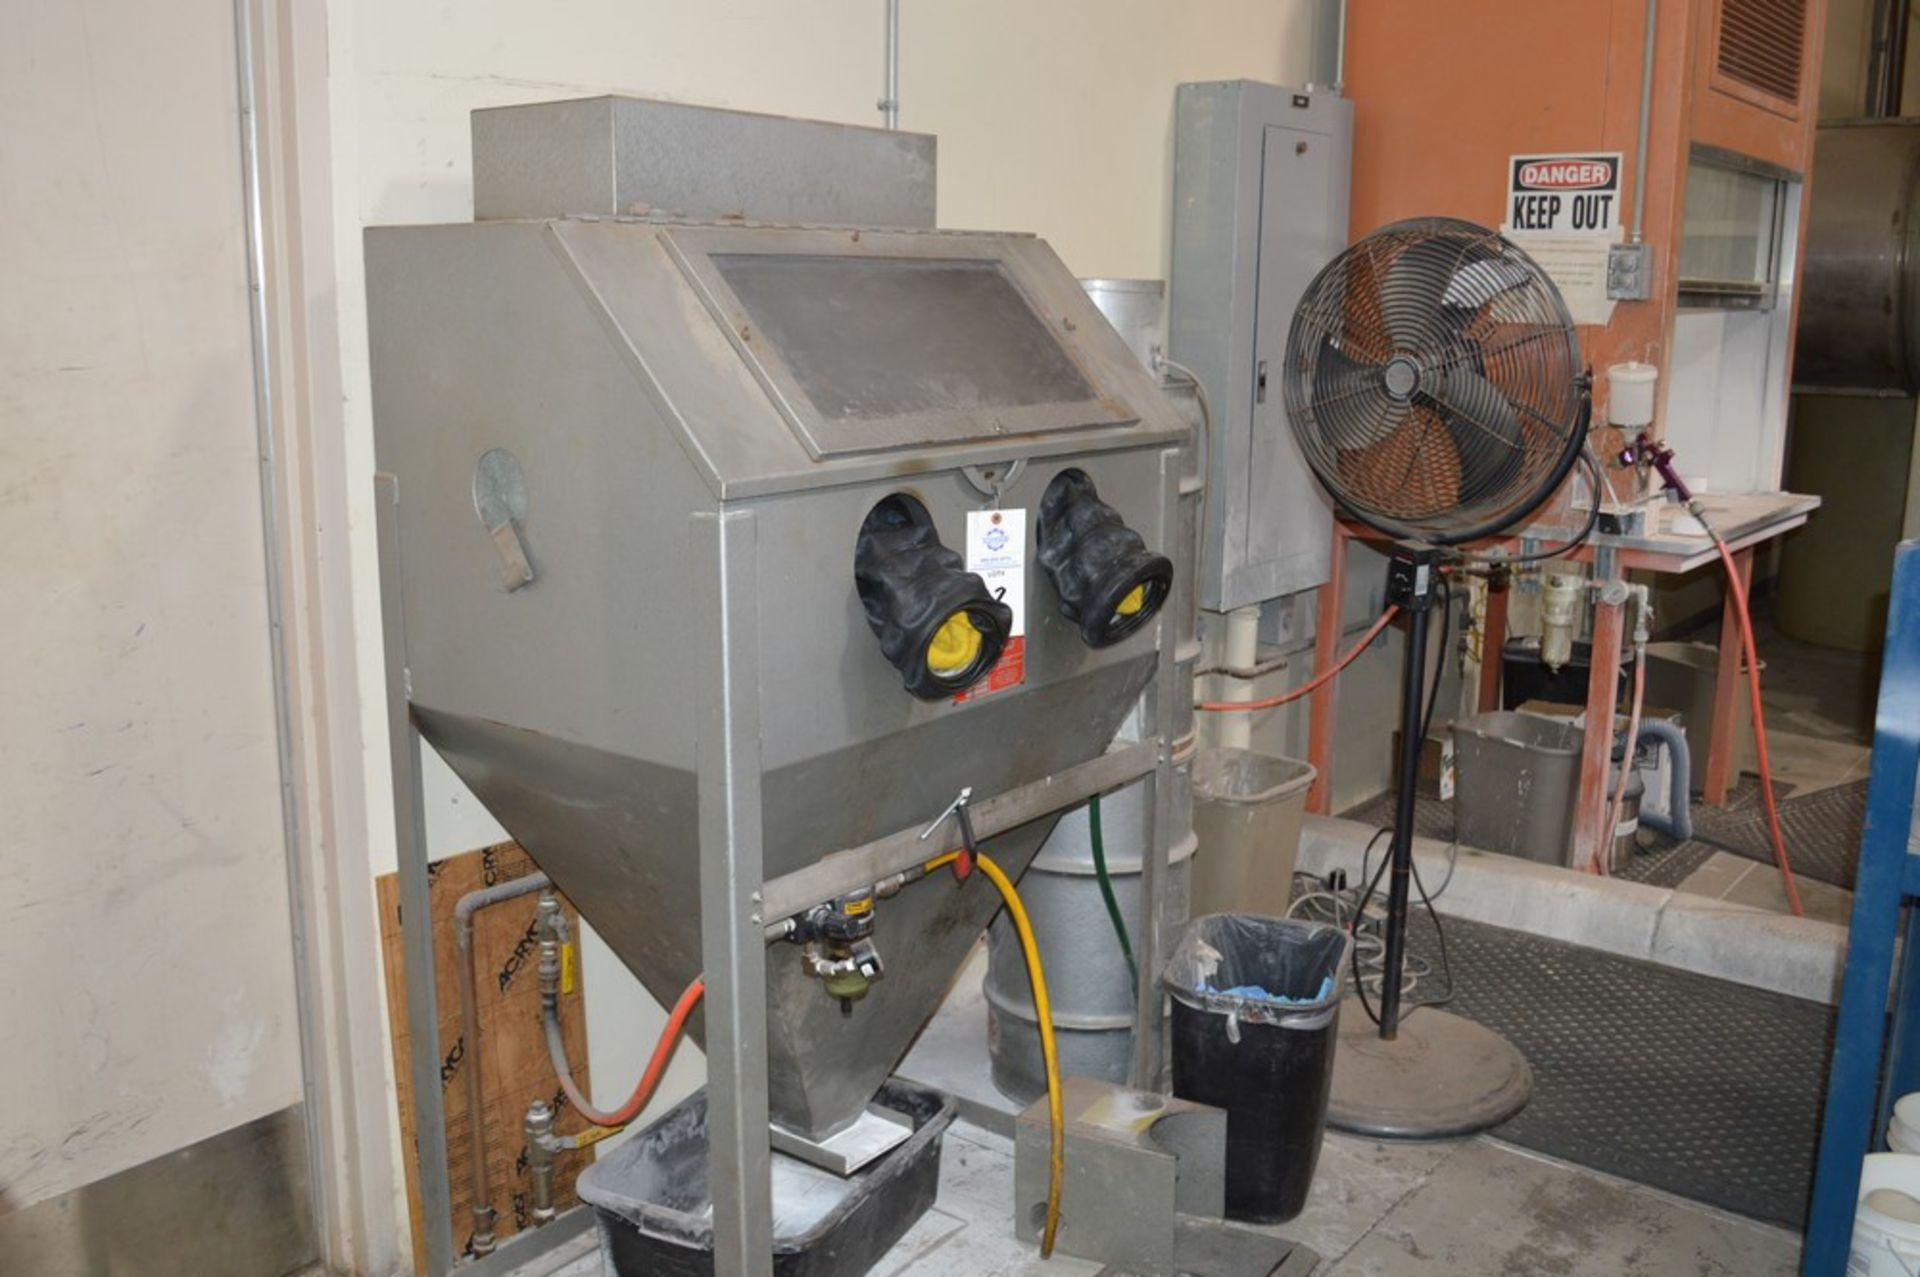 Trinco dry blast cabinet 36/BP-2 with air filter and gloves - Image 5 of 5